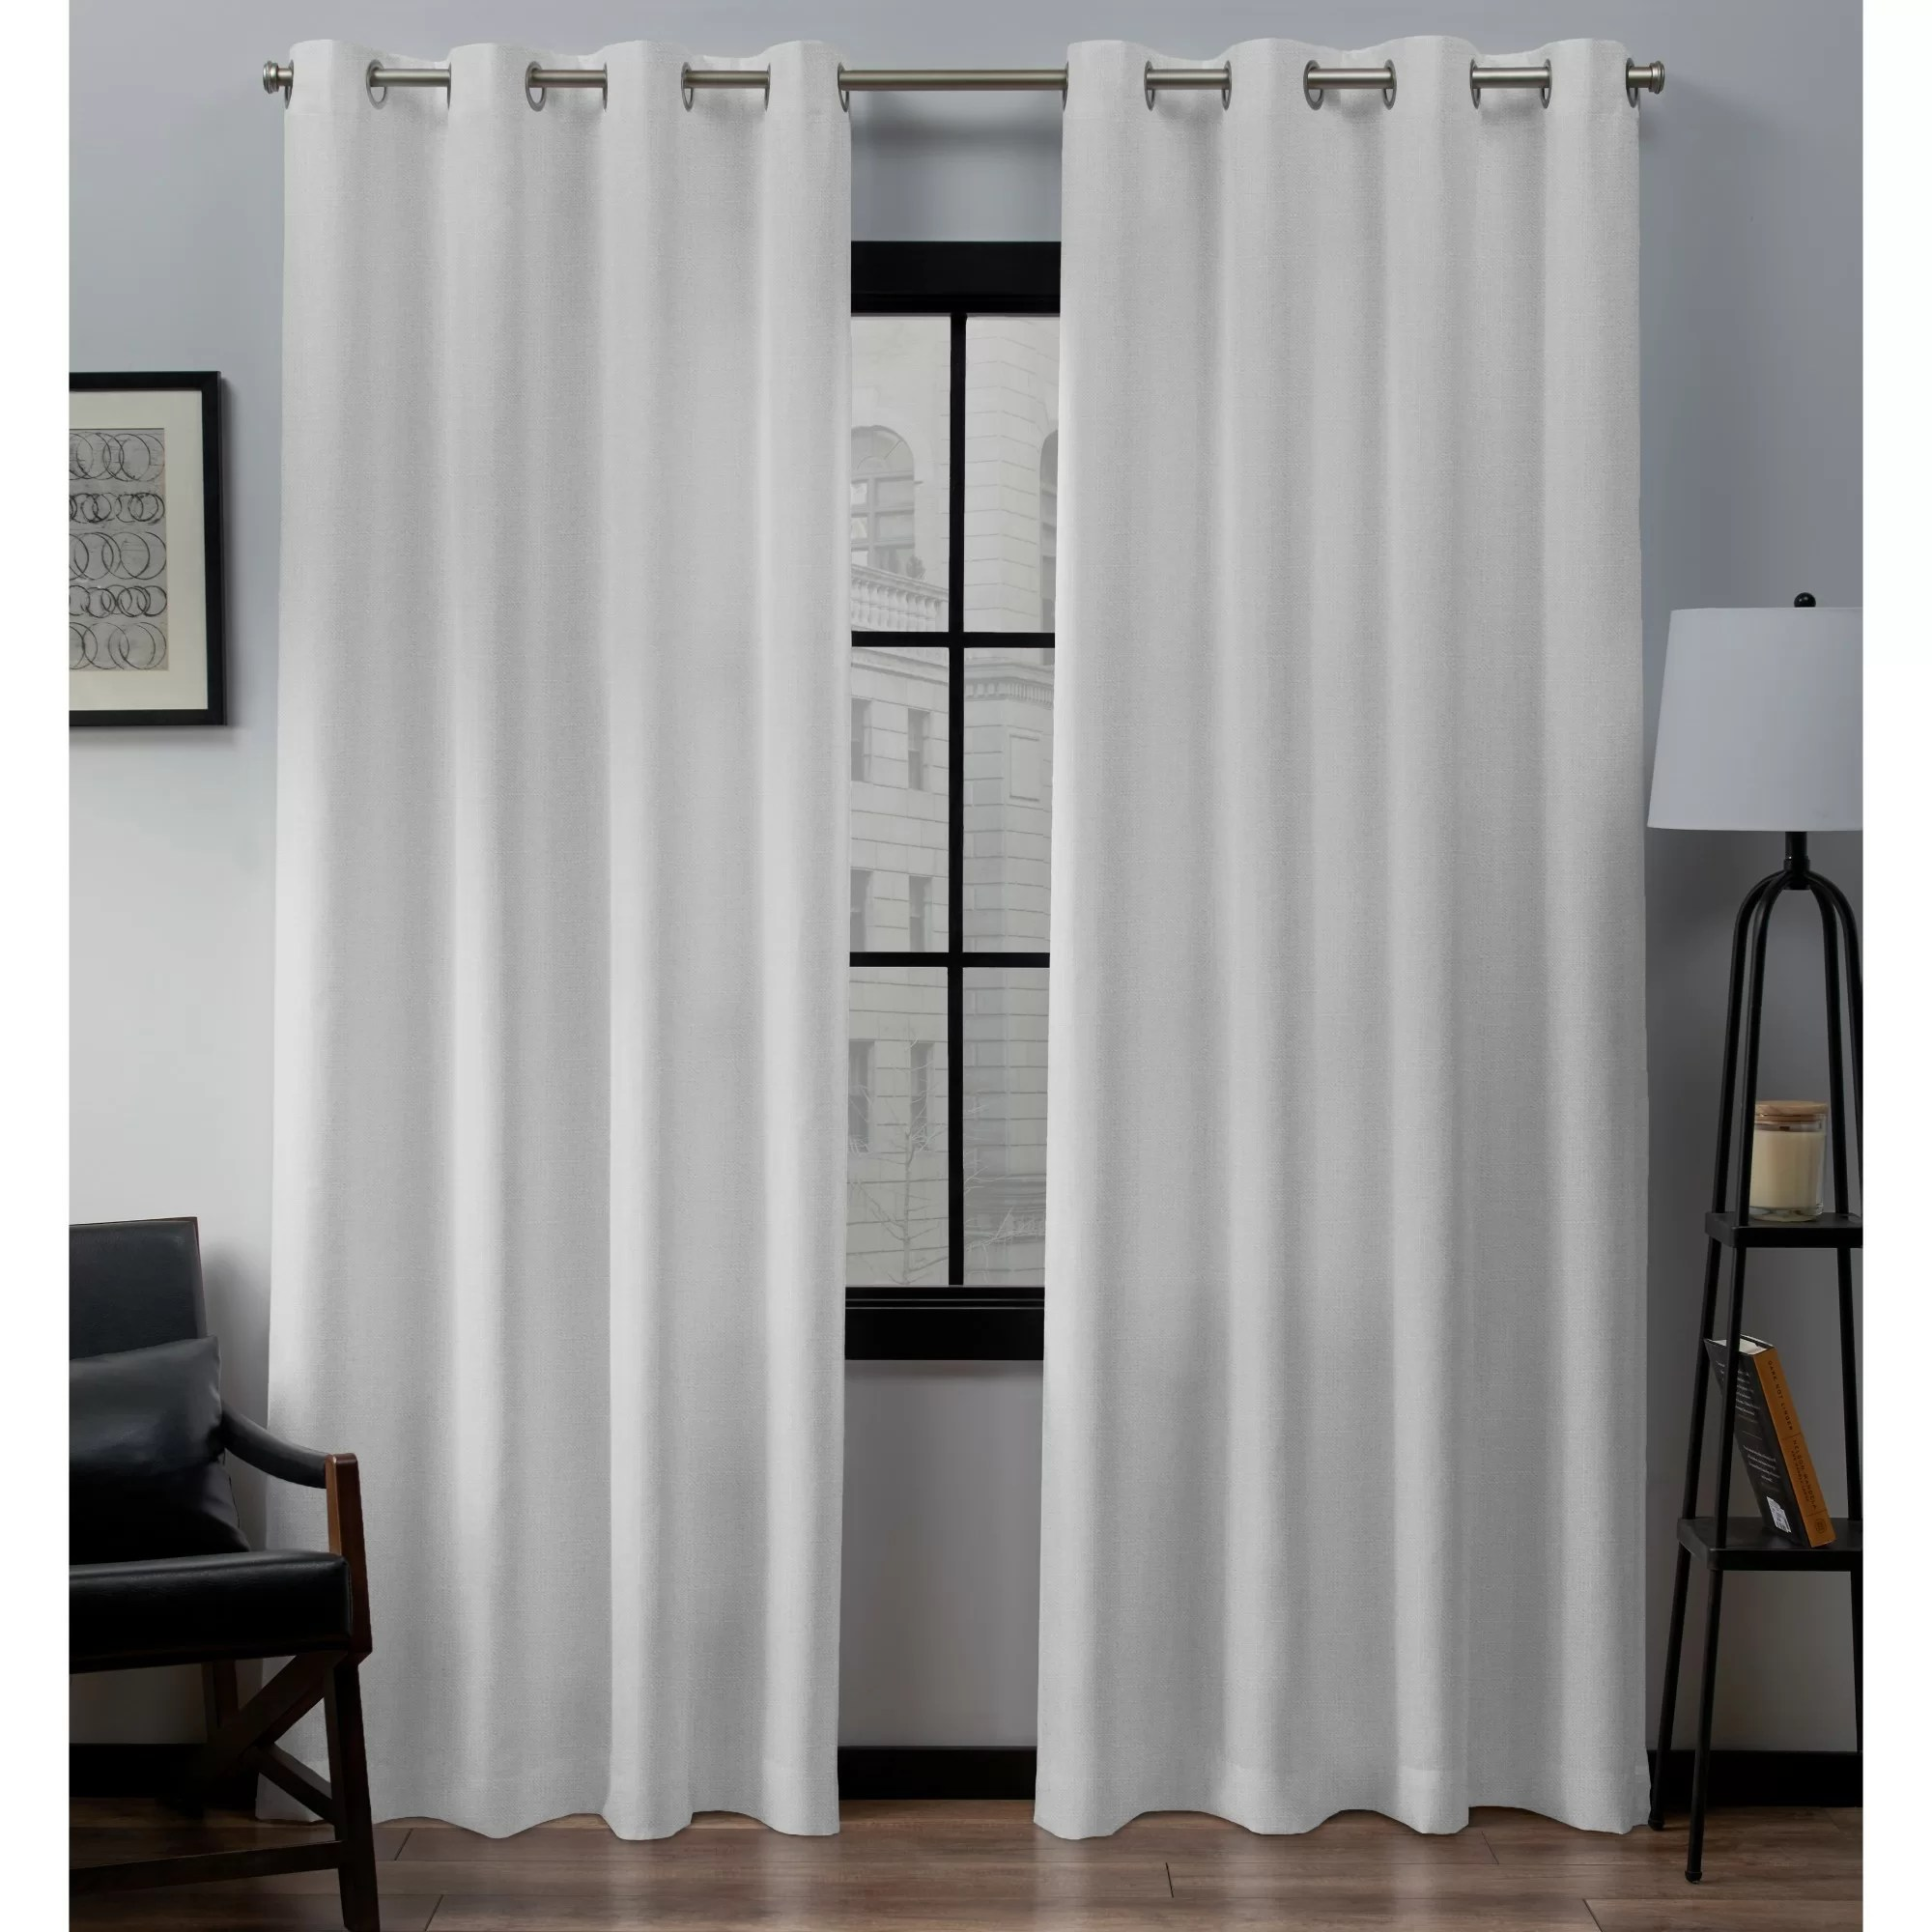 curtains drapes free shipping over